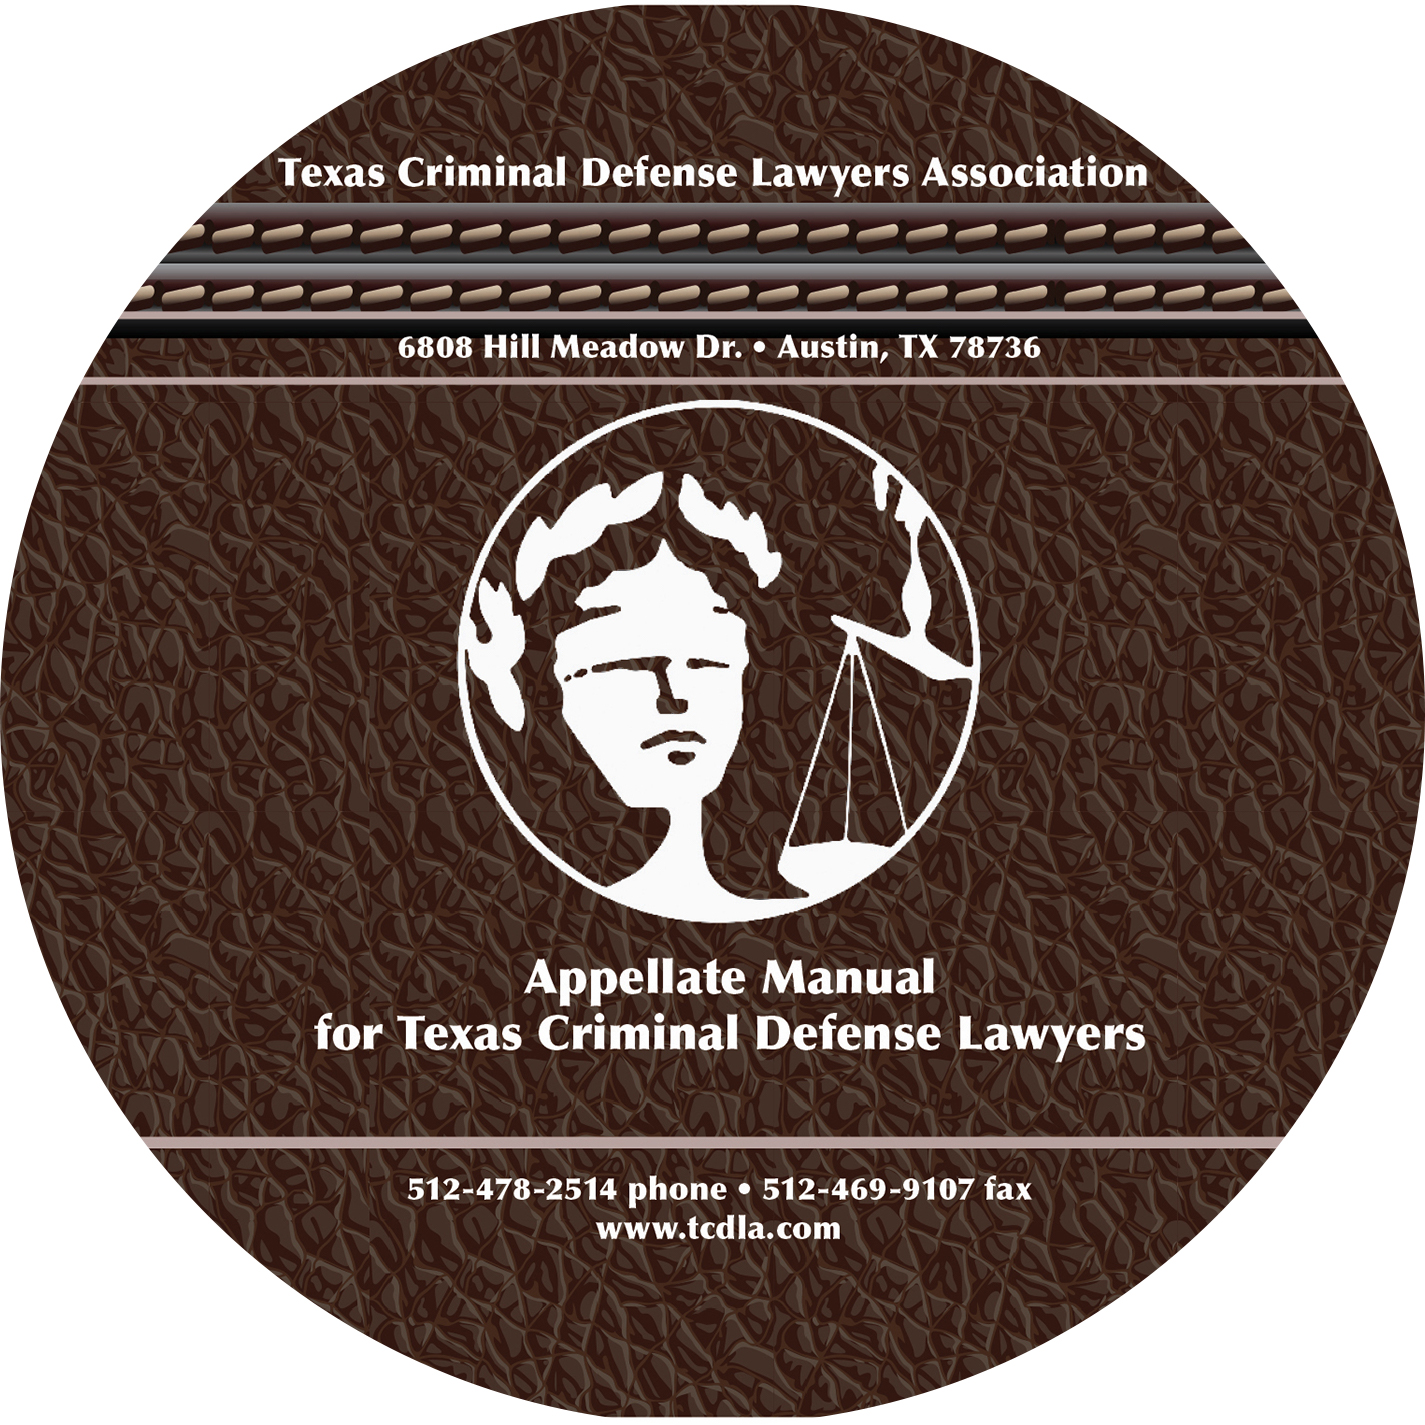 Appellate Manual CD, 2019-20